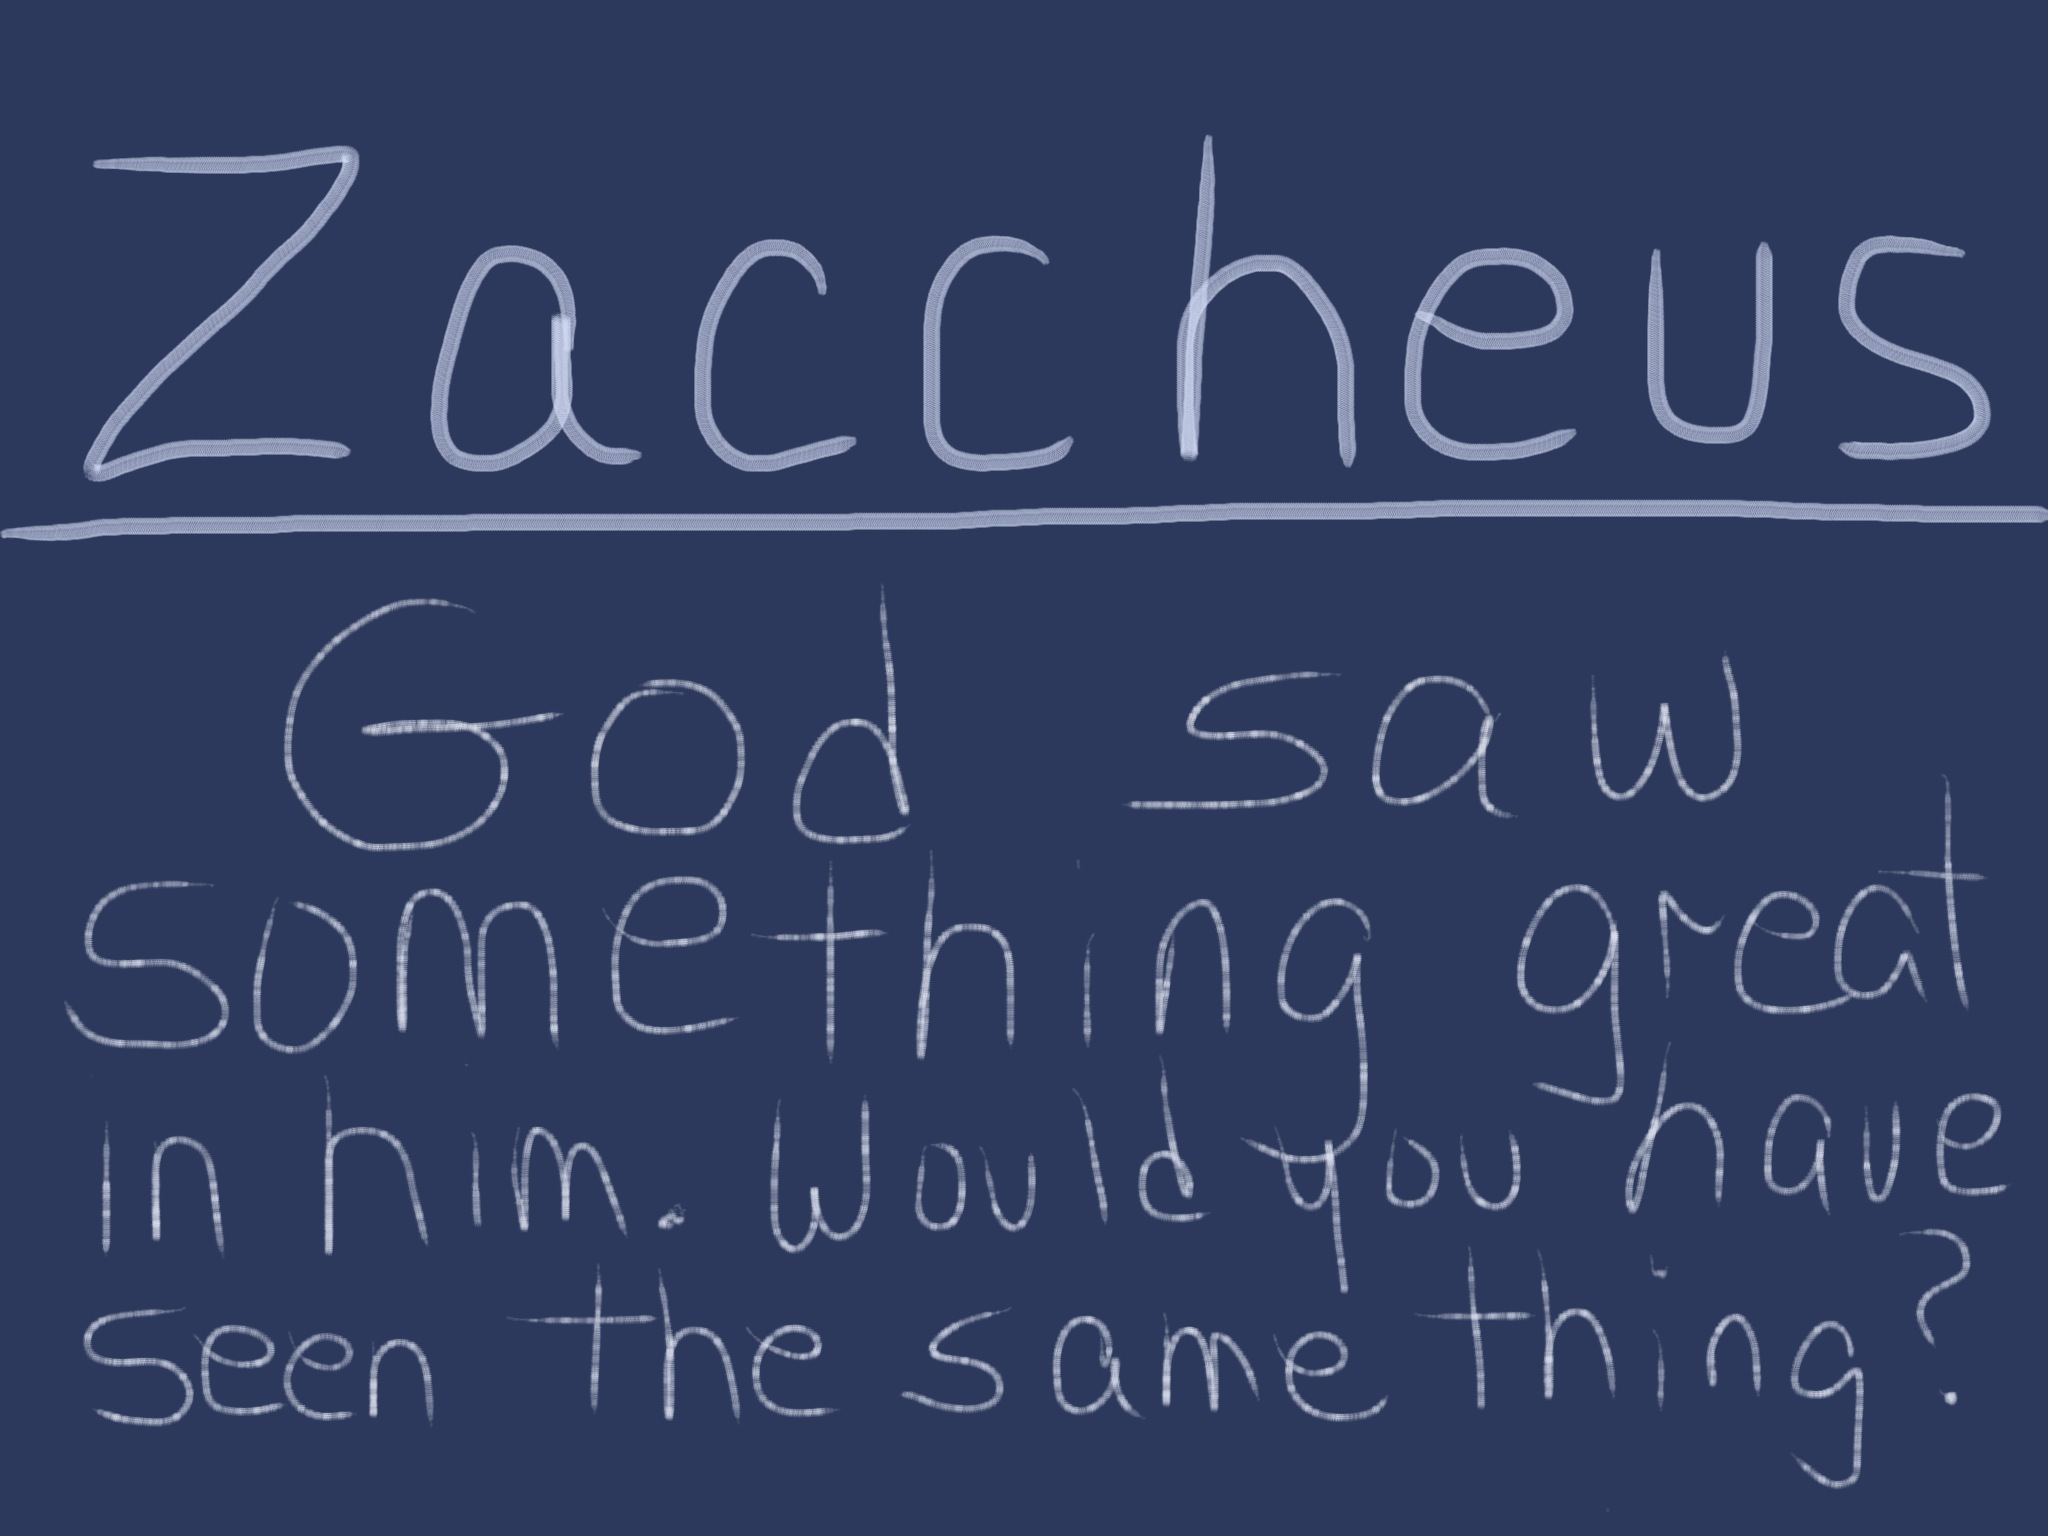 Would You Have Given Grace To Zaccheus?